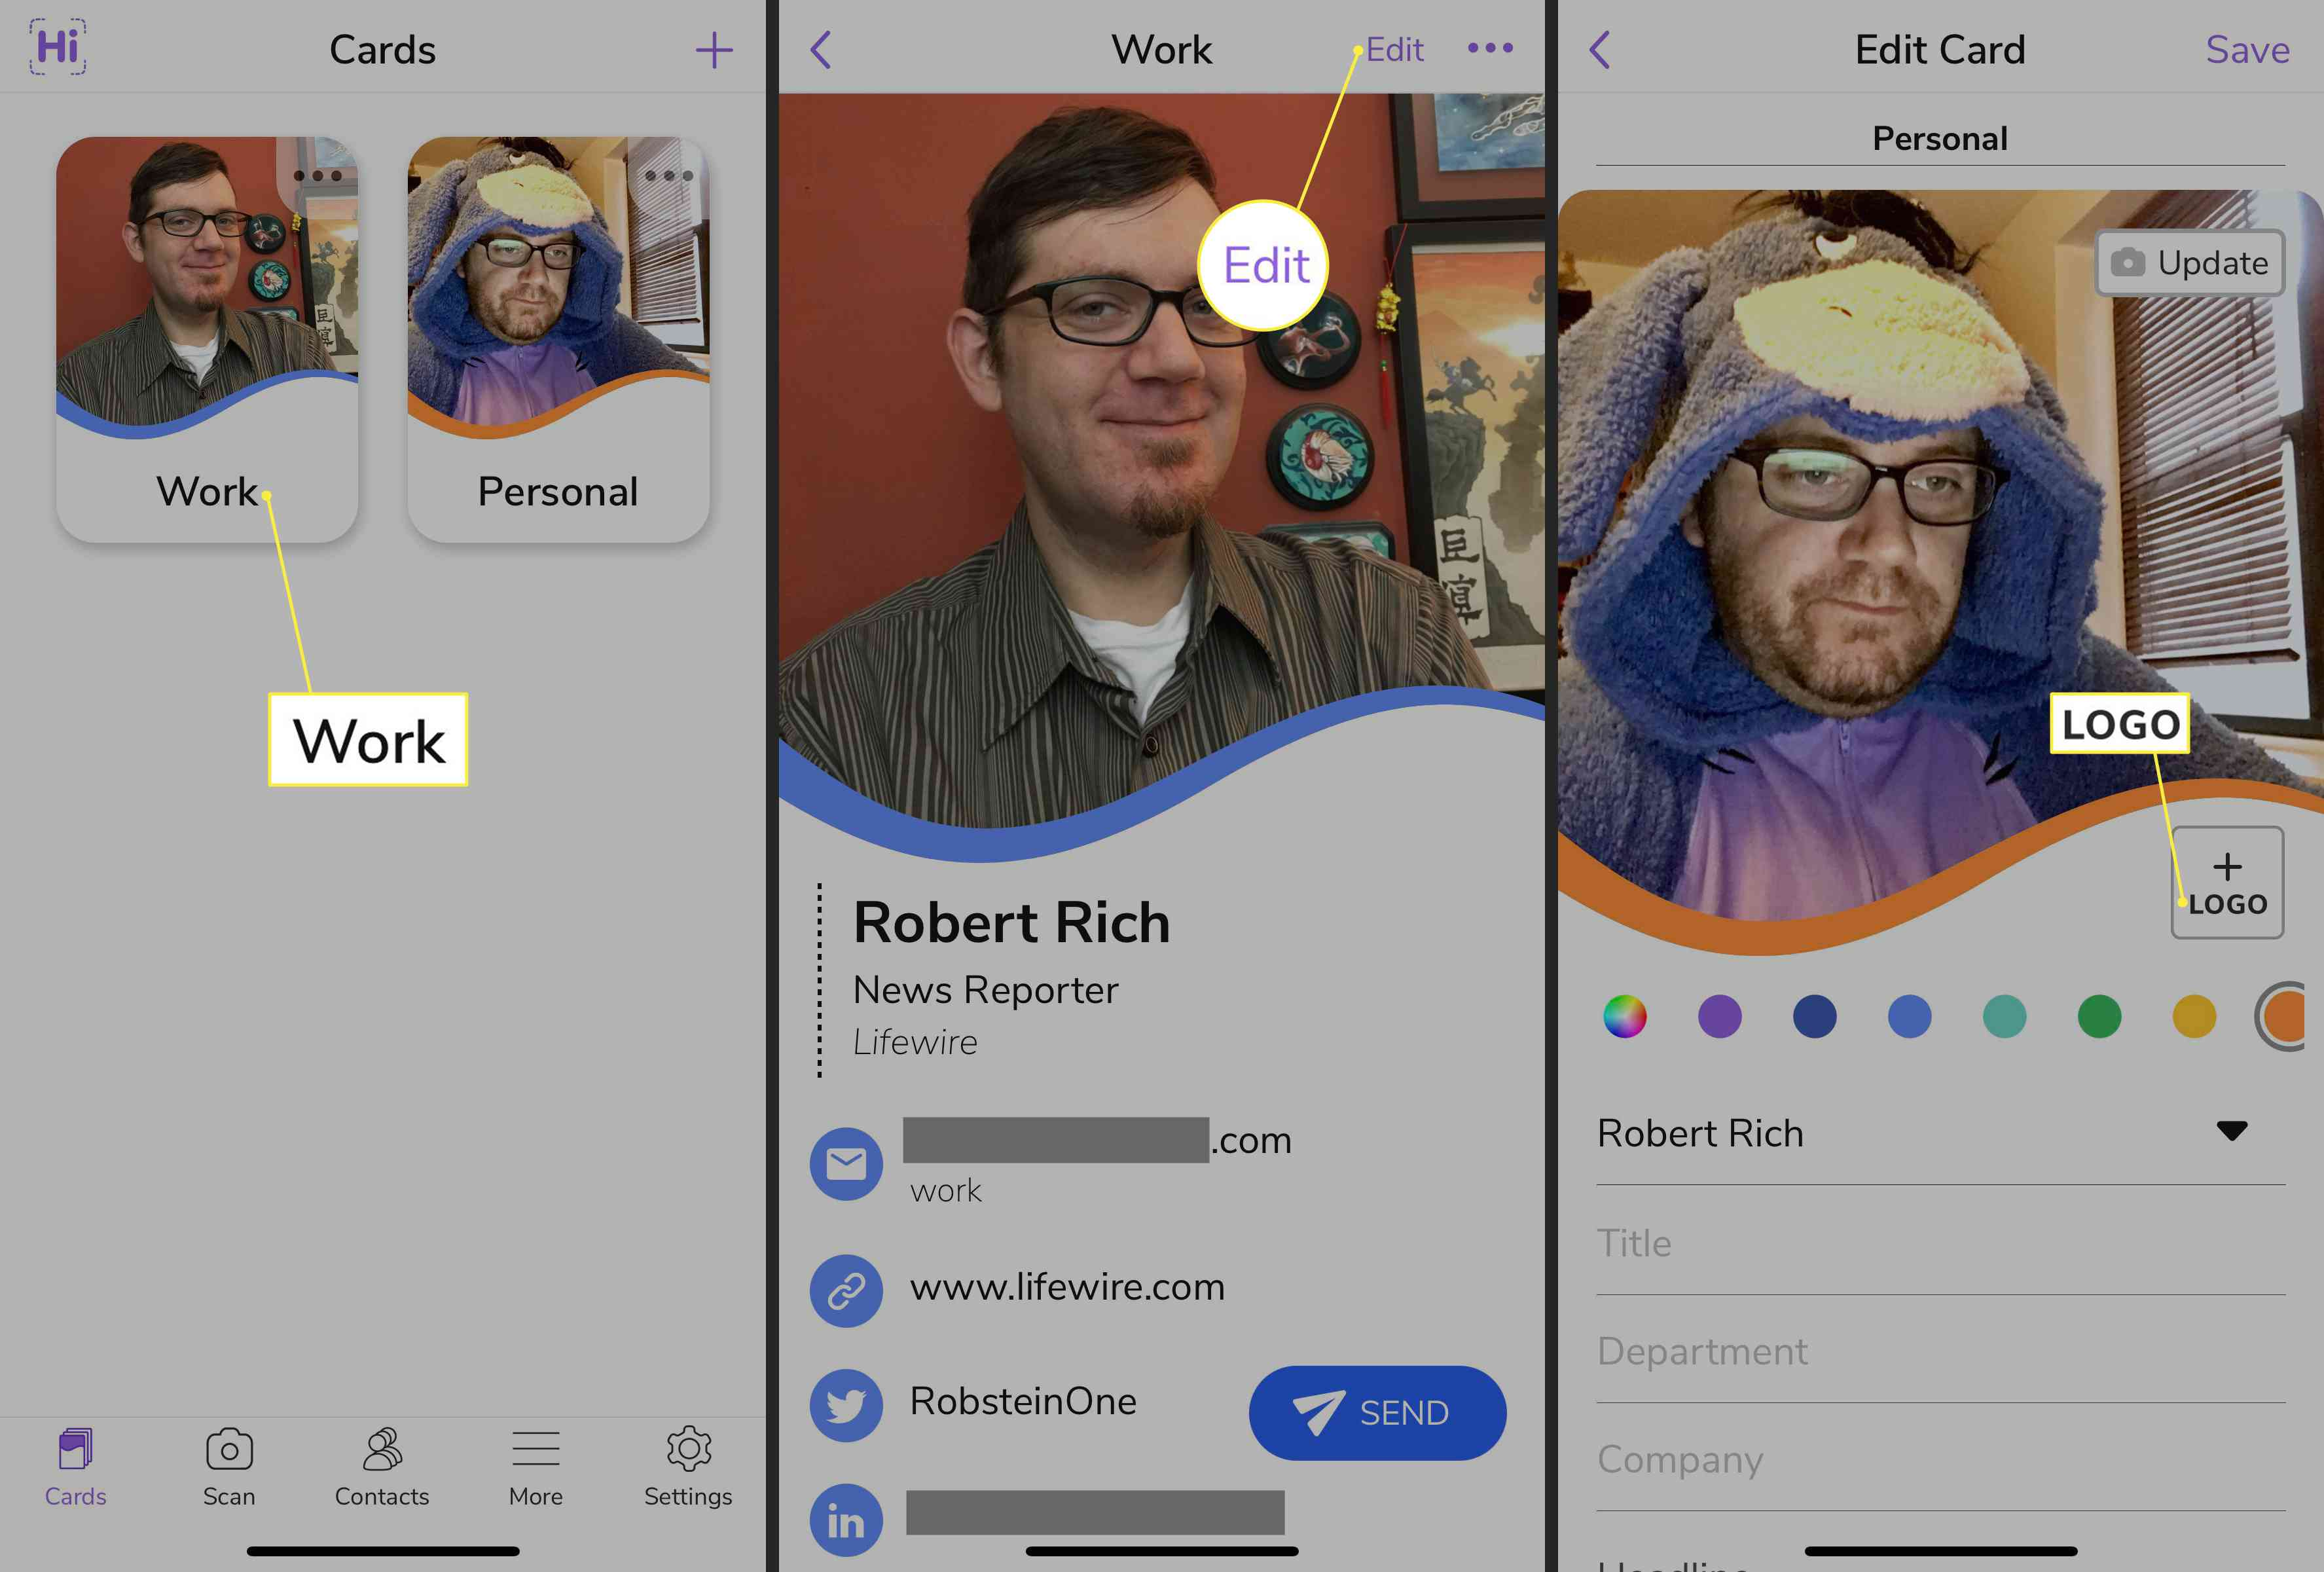 Work business card, Edit, and Logo highlighted in HiHello app for iOS